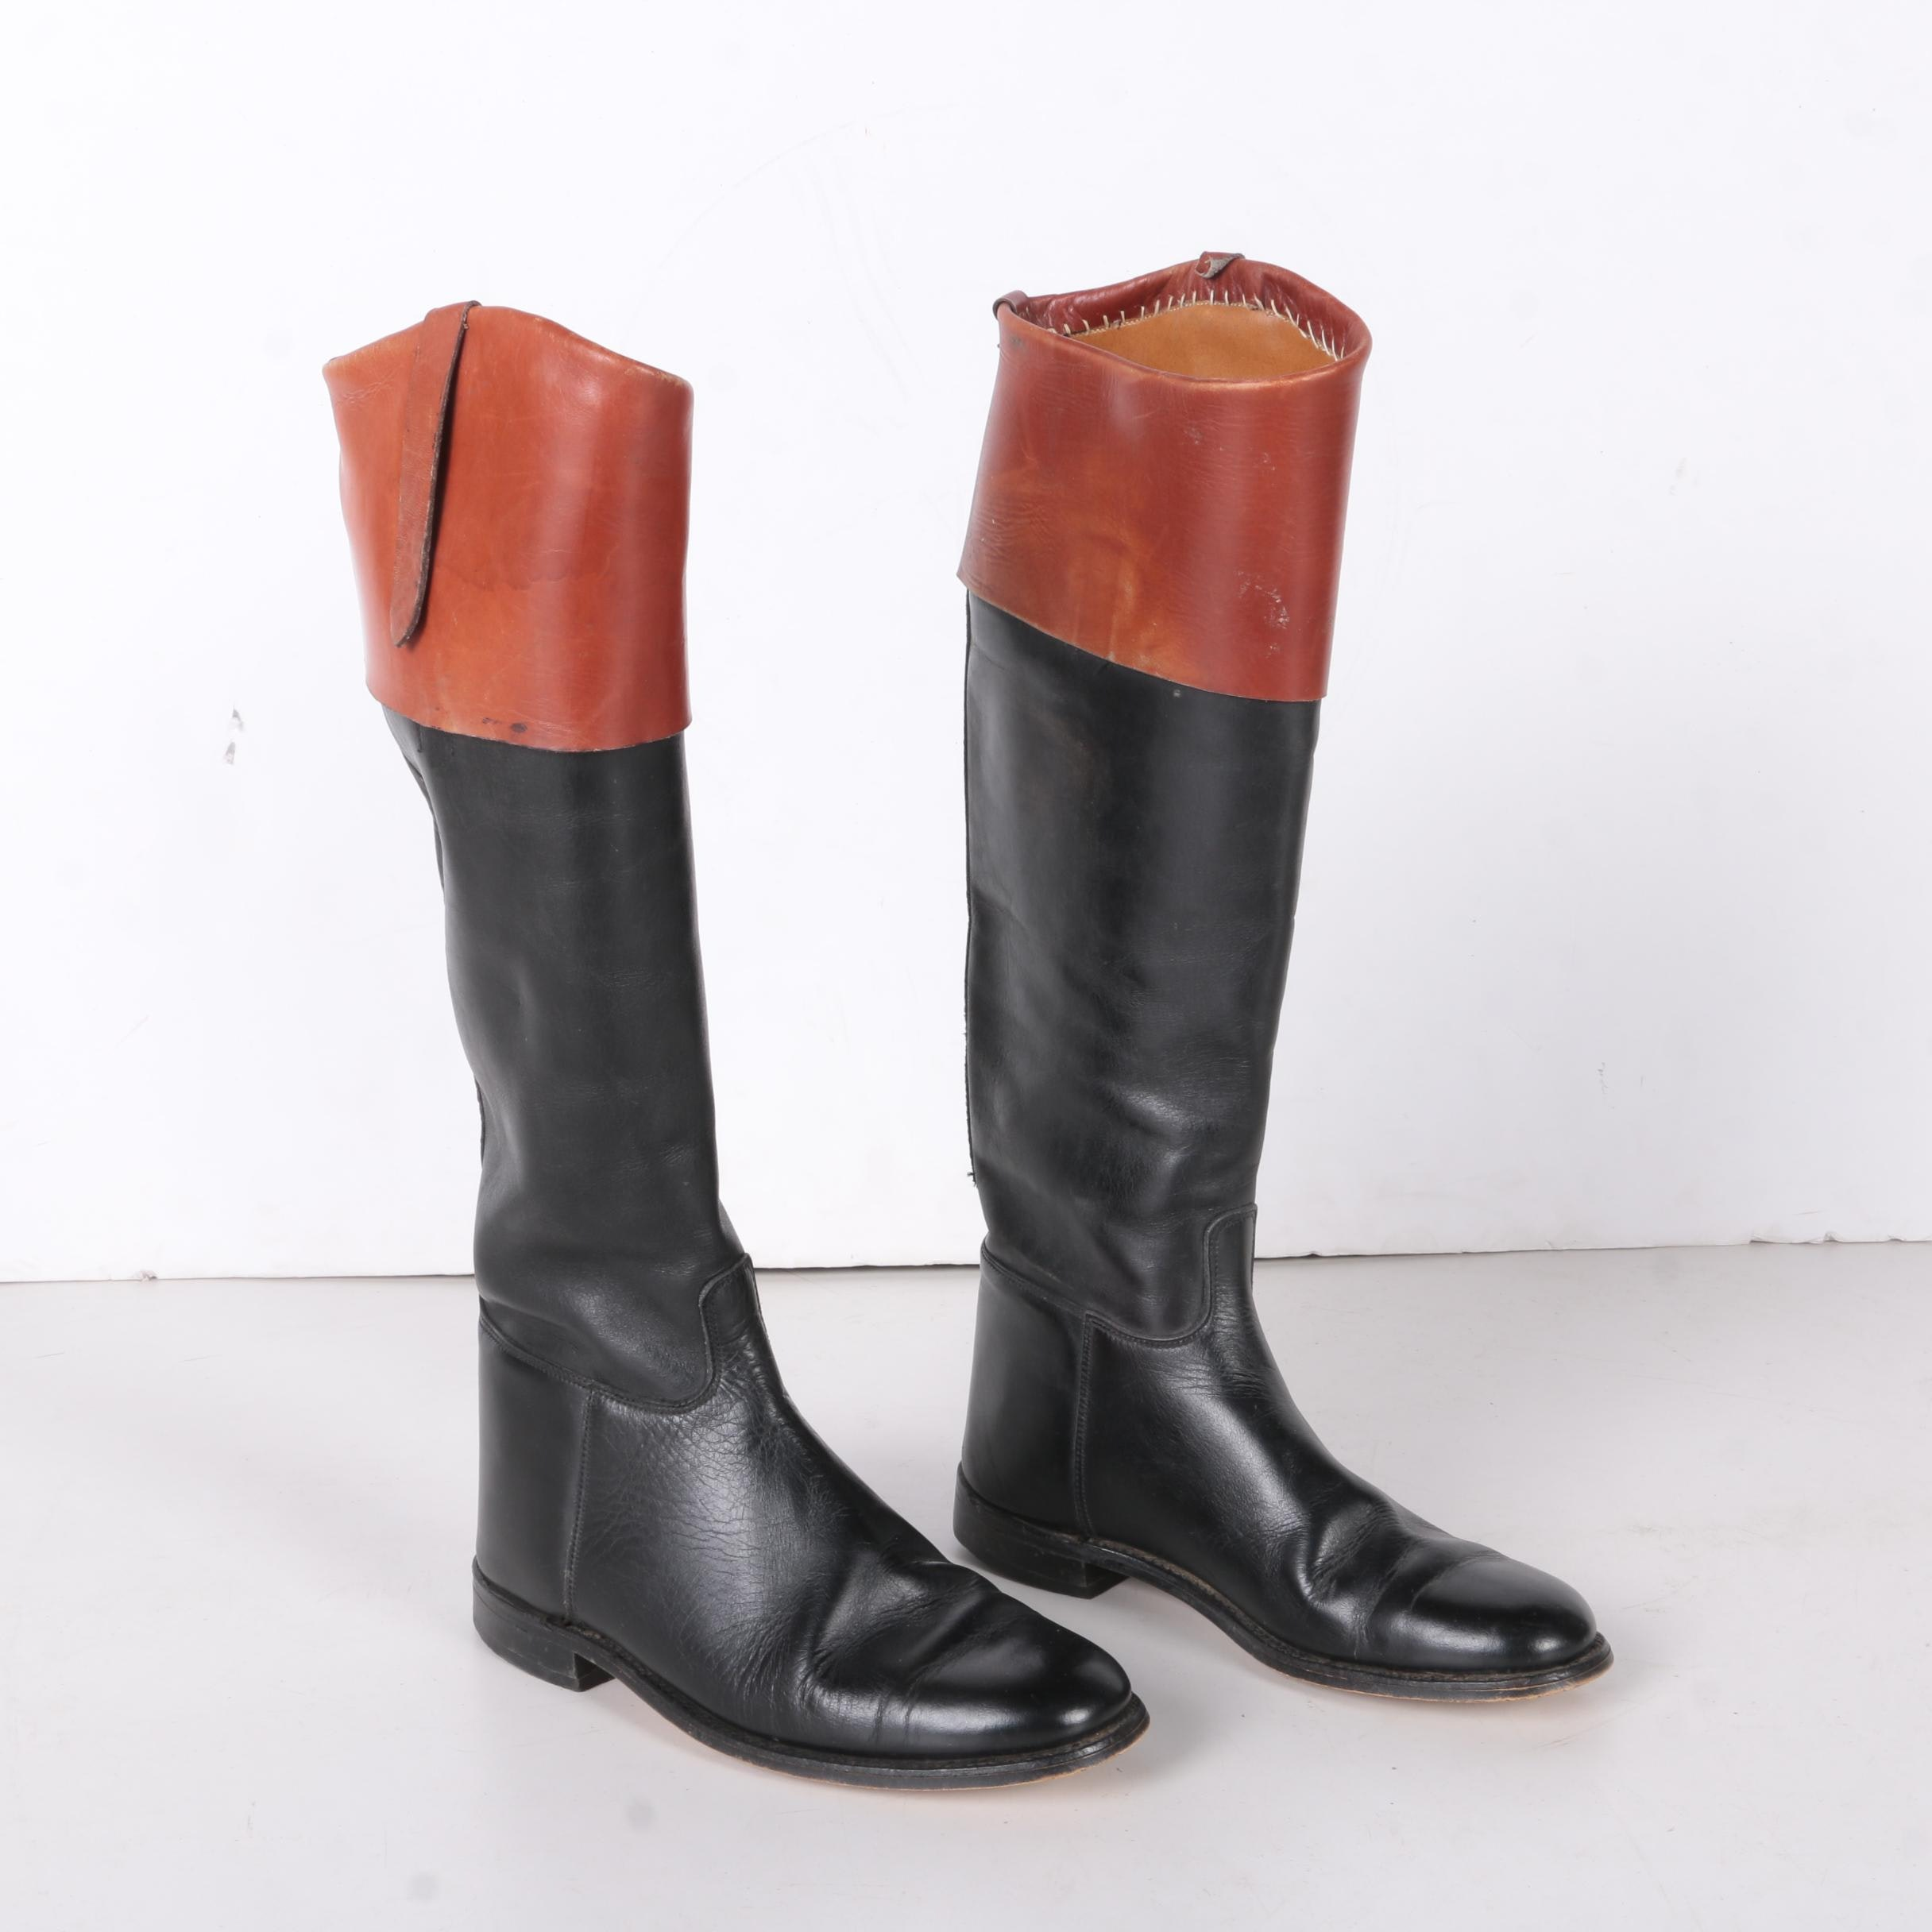 Marlborough English Leather Equestrian Riding Boots